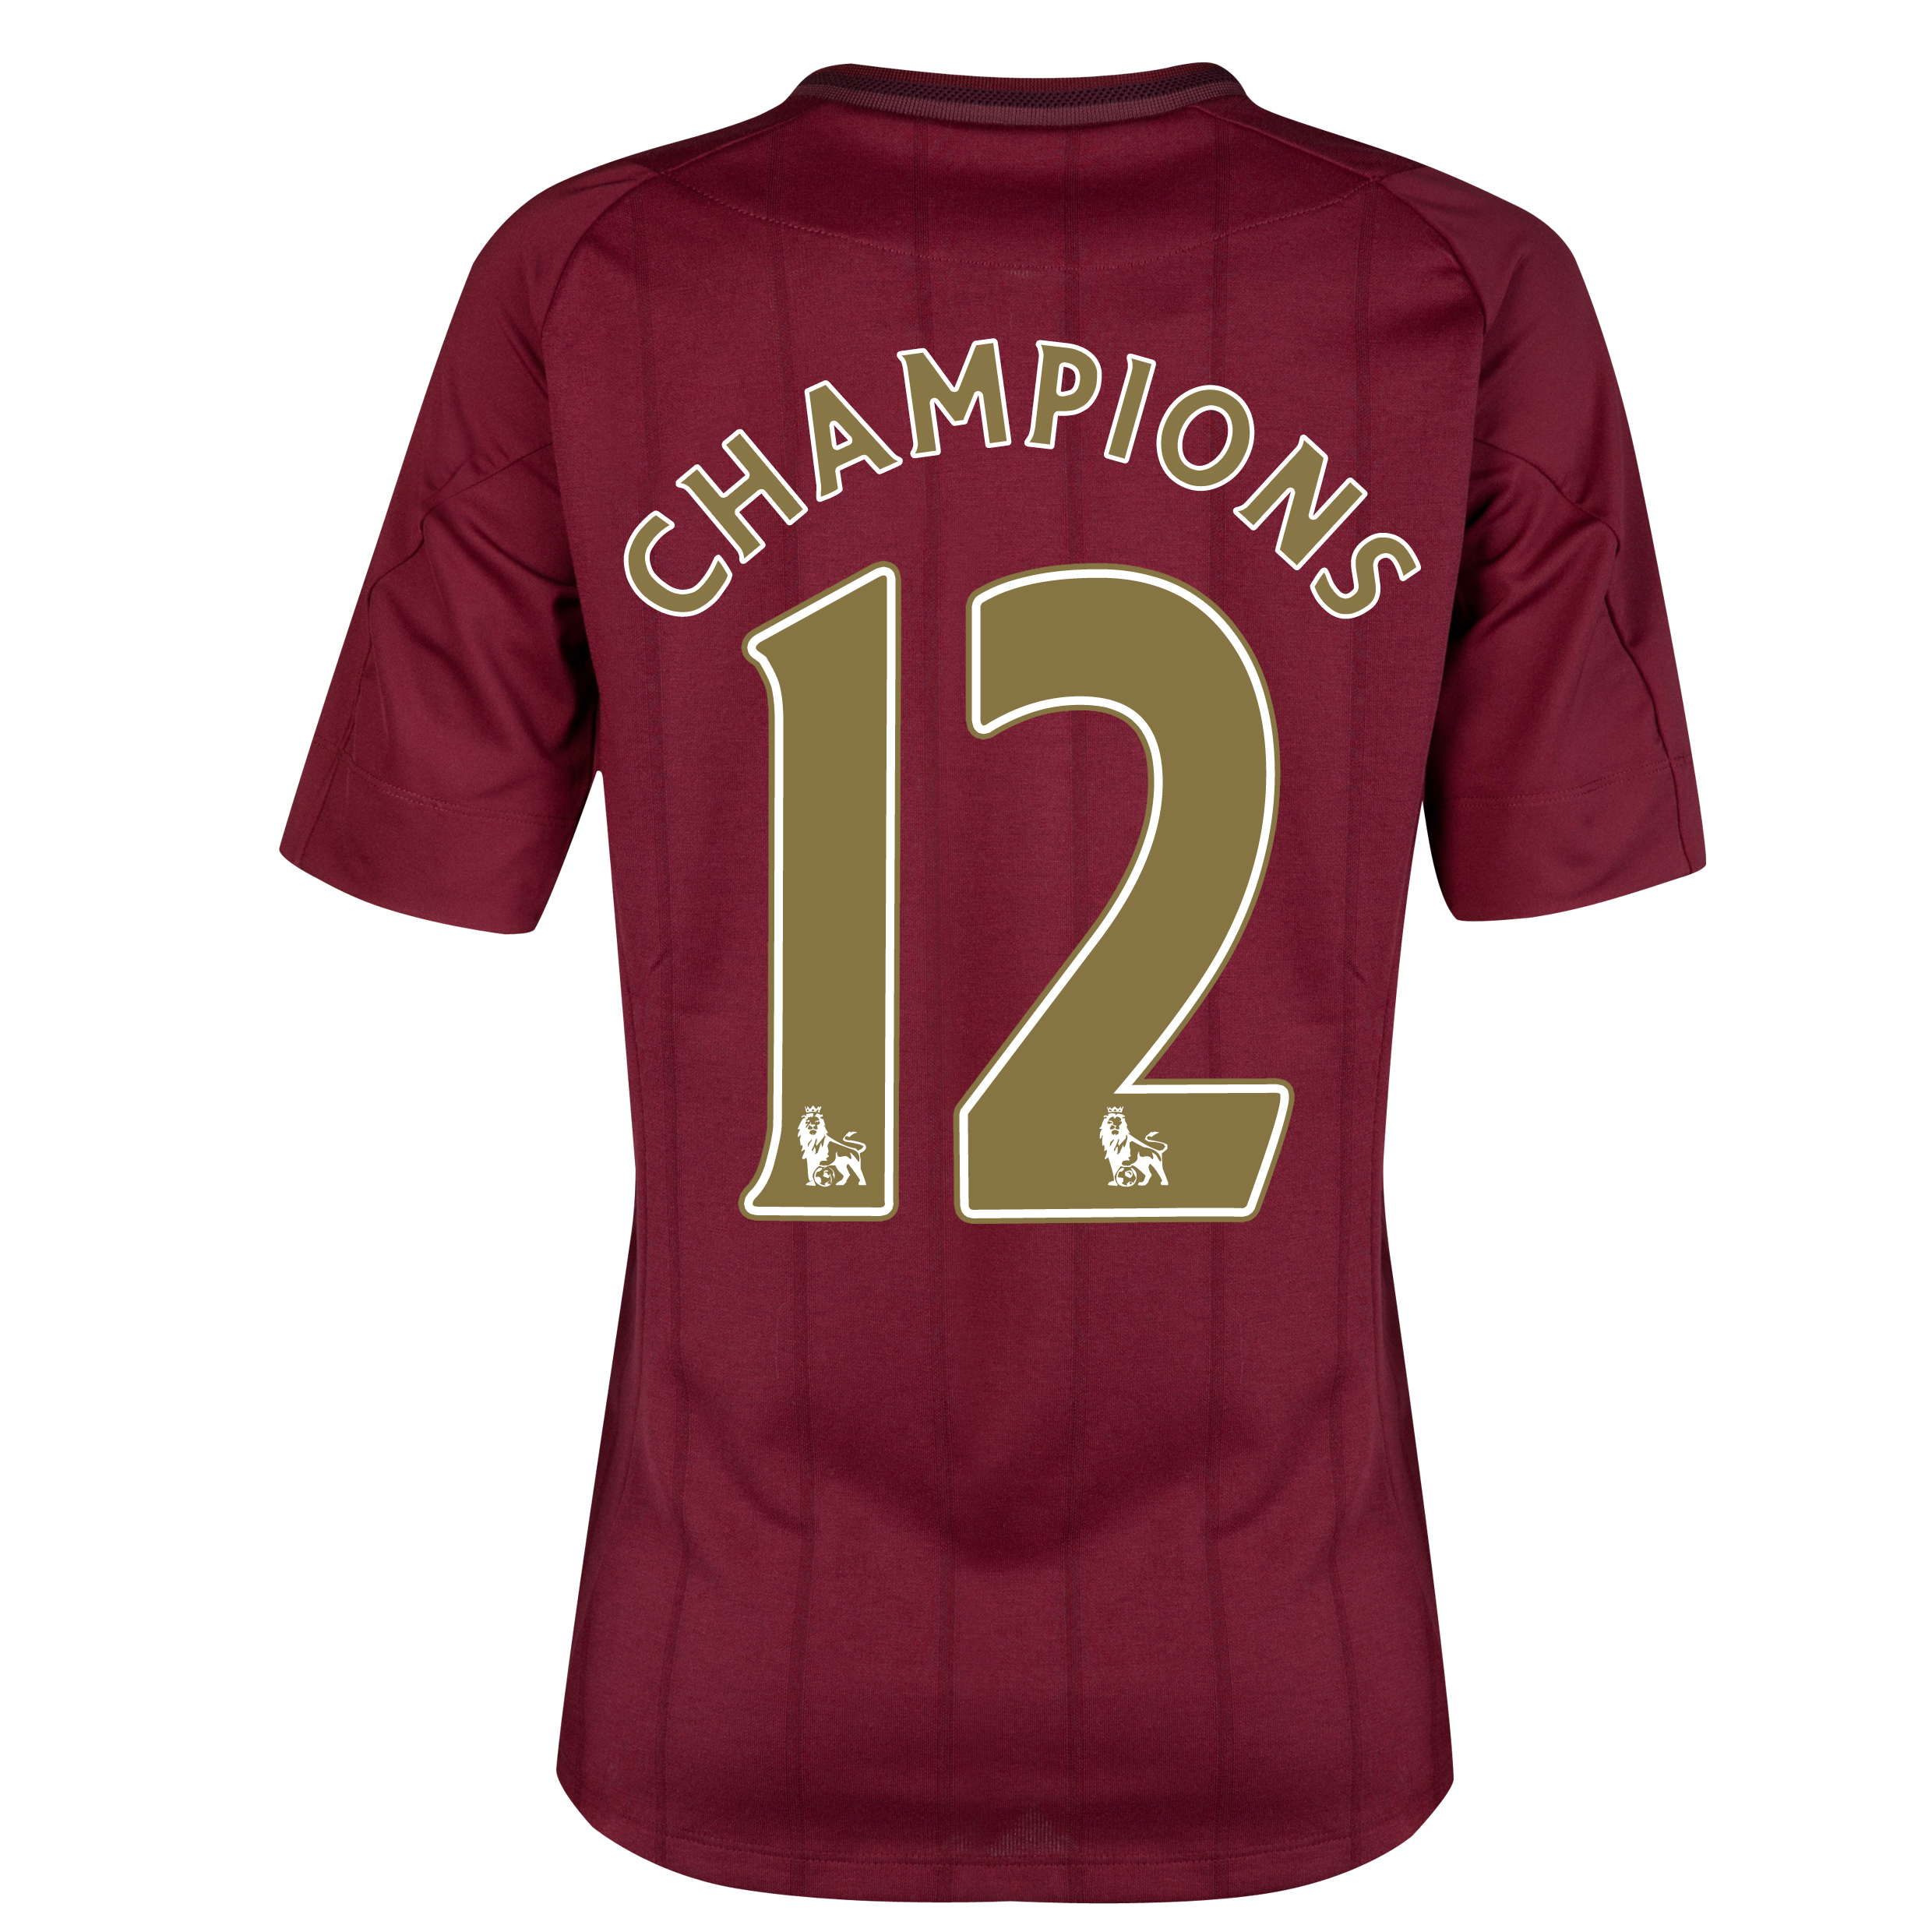 Manchester City Away Shirt 2012/13 - Womens with Champions 12 printing